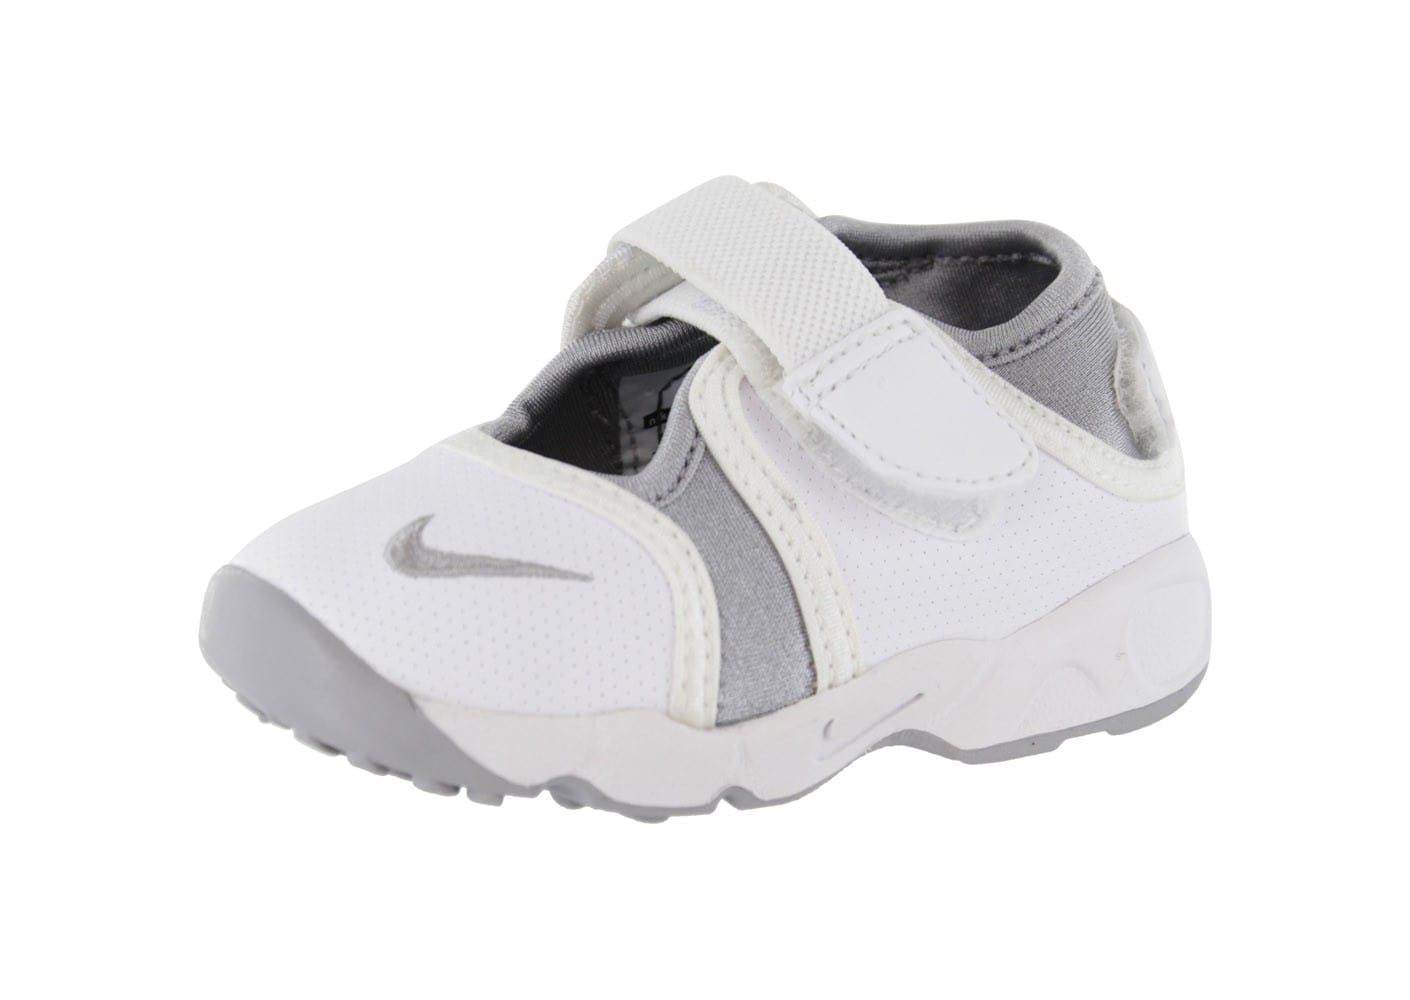 premium selection 9ded8 f8eed chaussure ete bebe nike